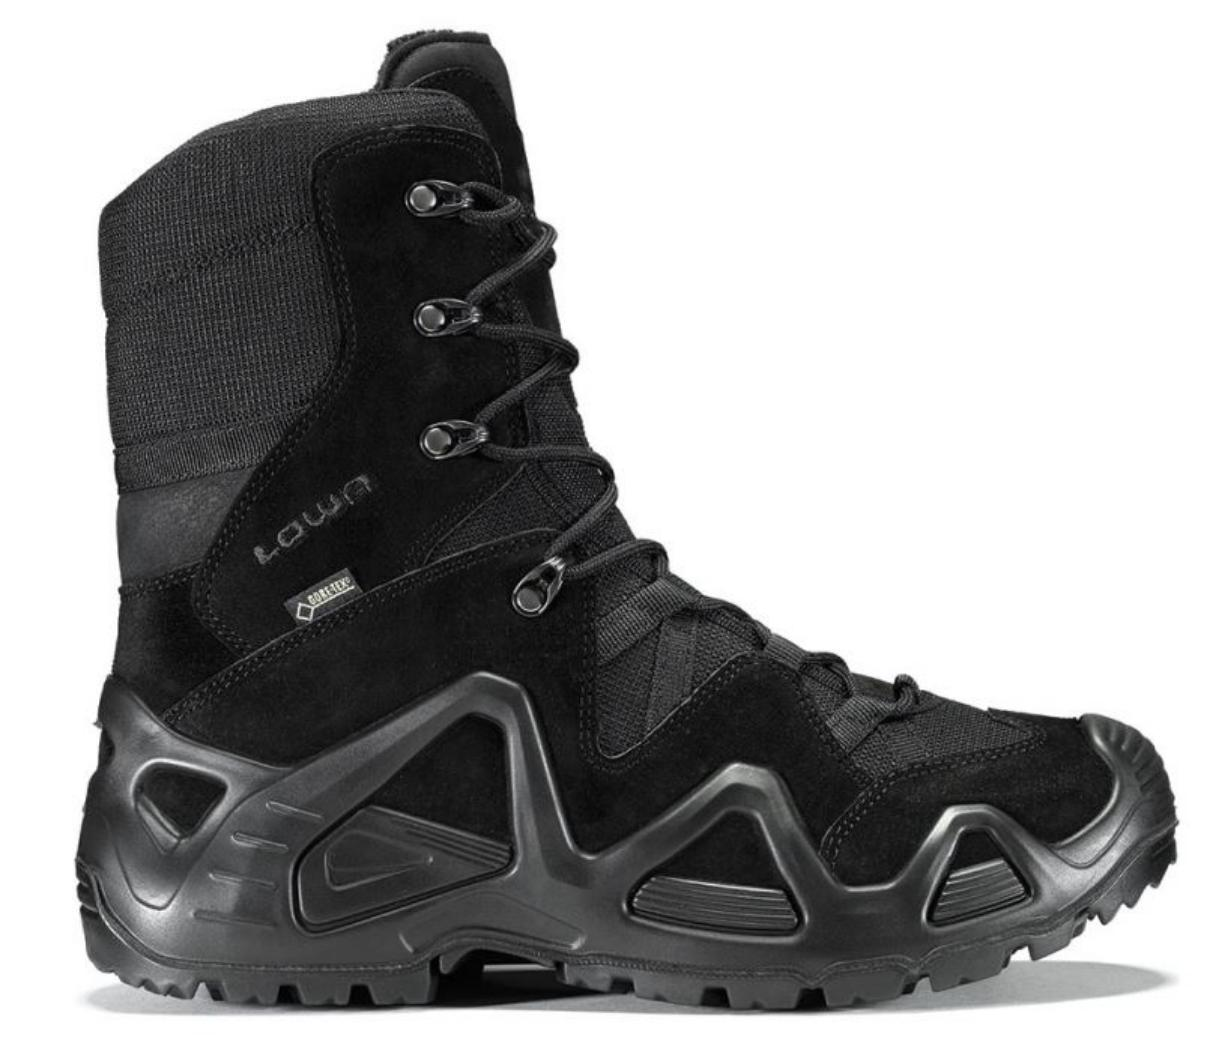 ZEPHYR GTX® HI TF Black